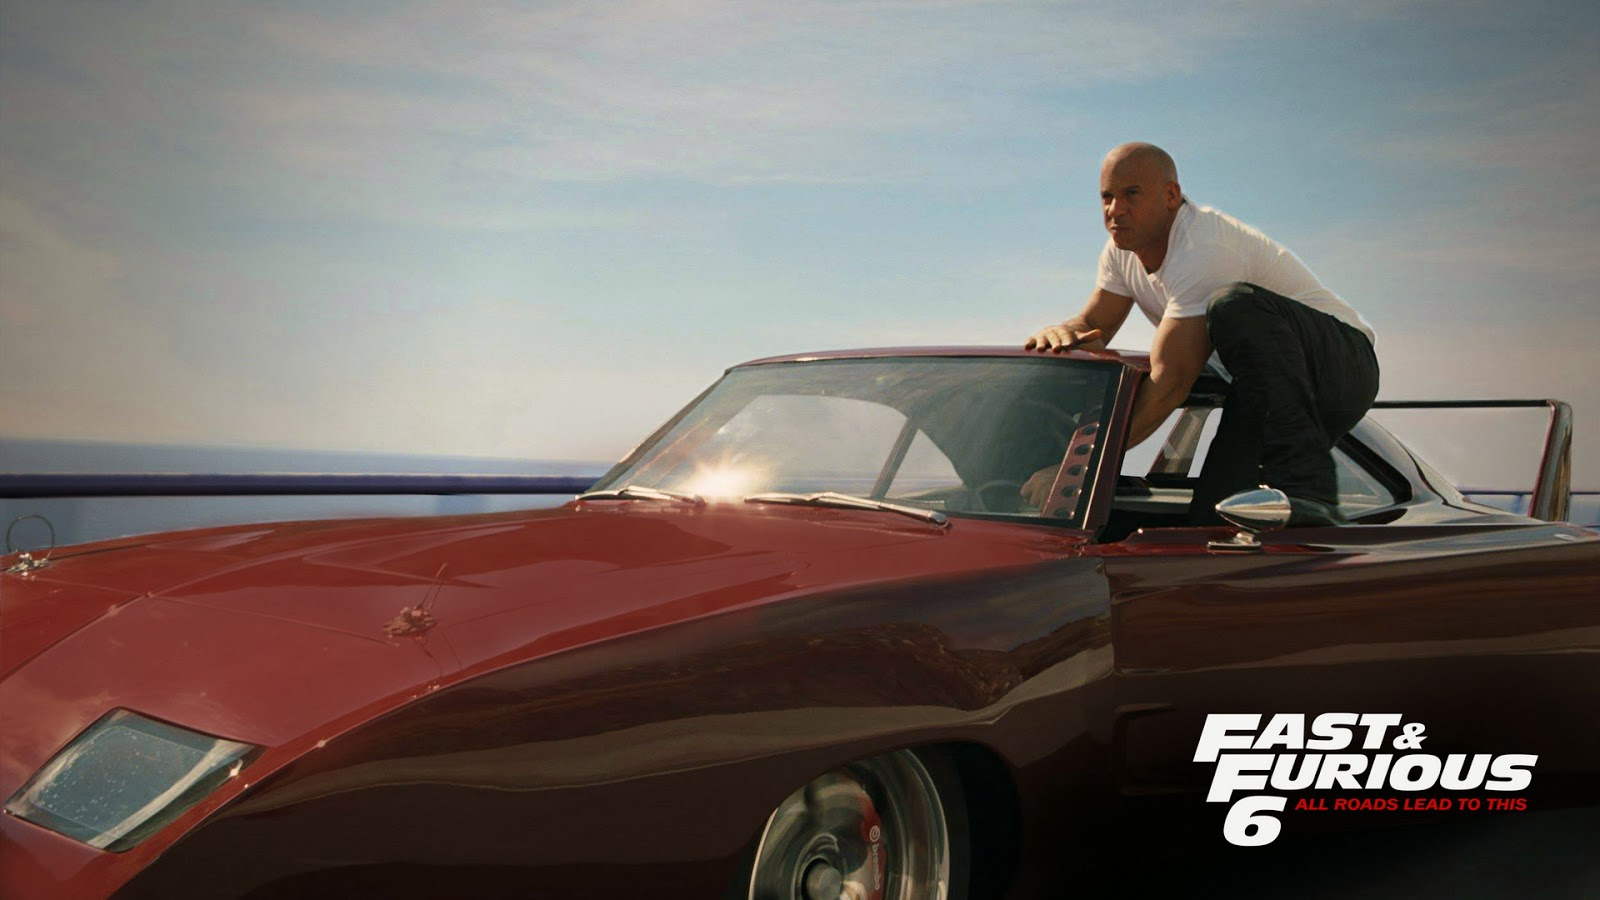 2013 wallpaper fast and furious 6 freejpg 1600x900